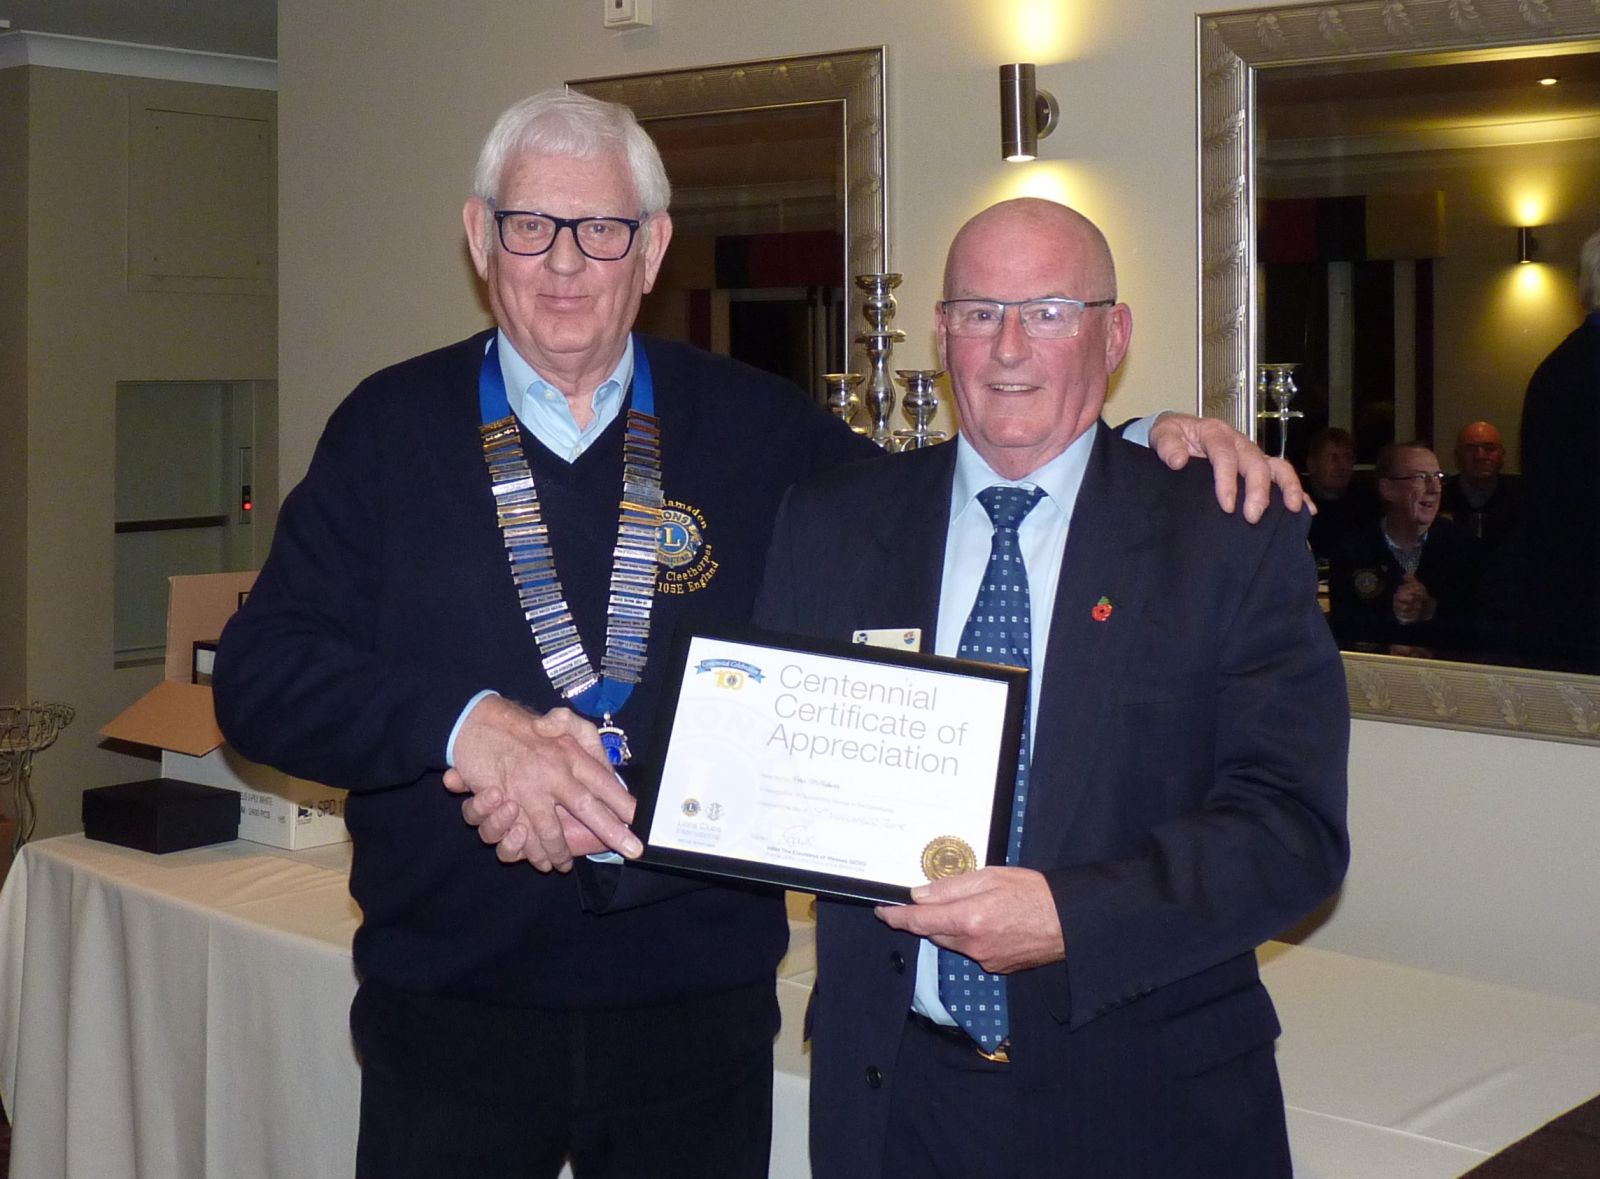 Grimsby Cleethorpes Lions Club